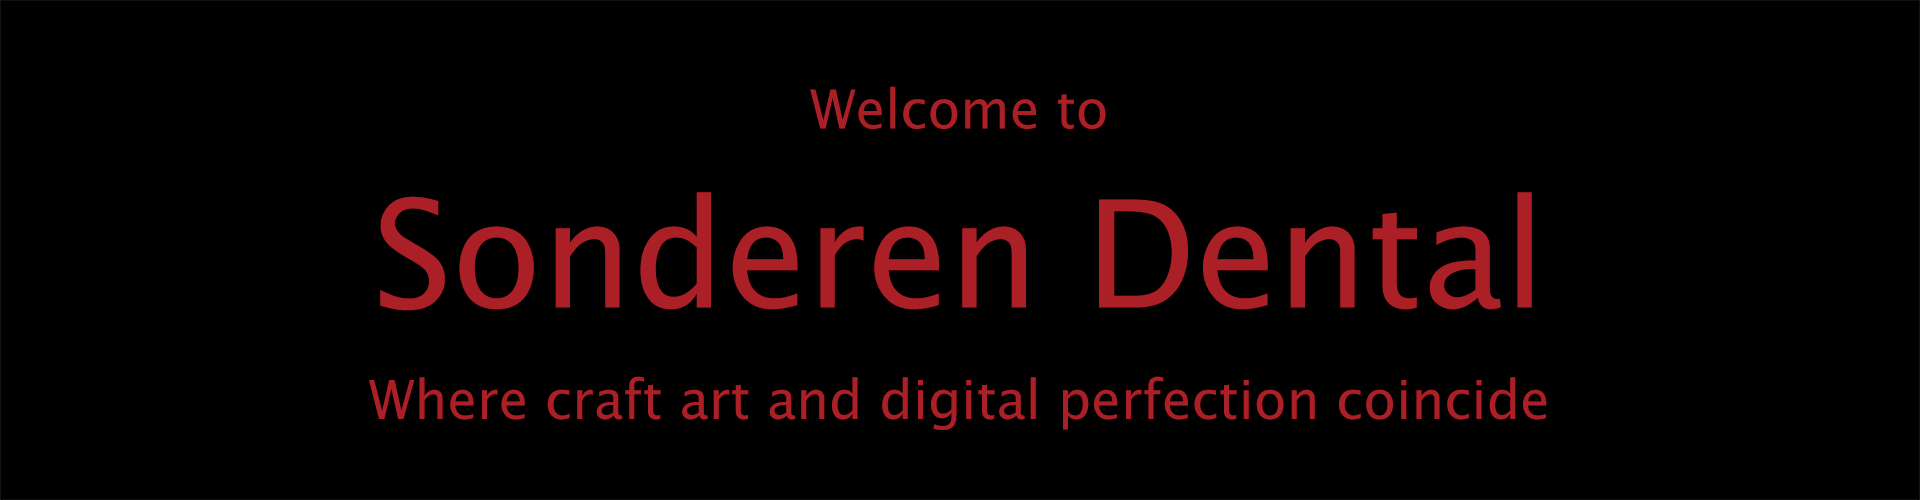 Welcome to Sonderen Dental